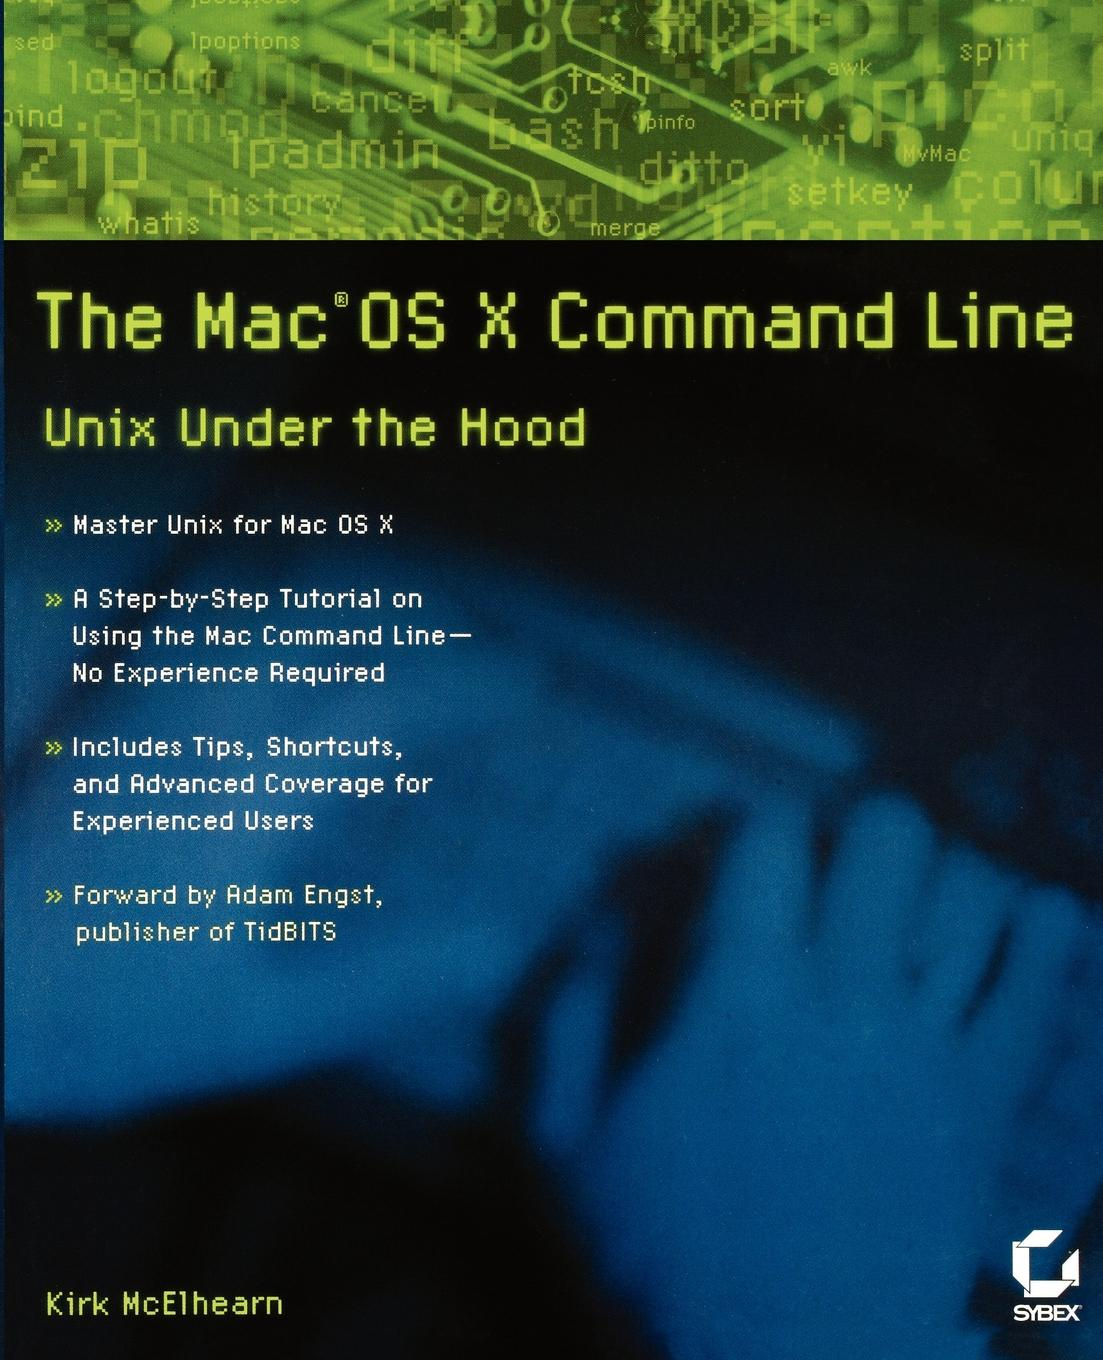 Kirk McElhearn The Mac OS X Command Line. Unix Under the Hood cliff truesdell mastering digital audio production the professional music workflow with mac os x